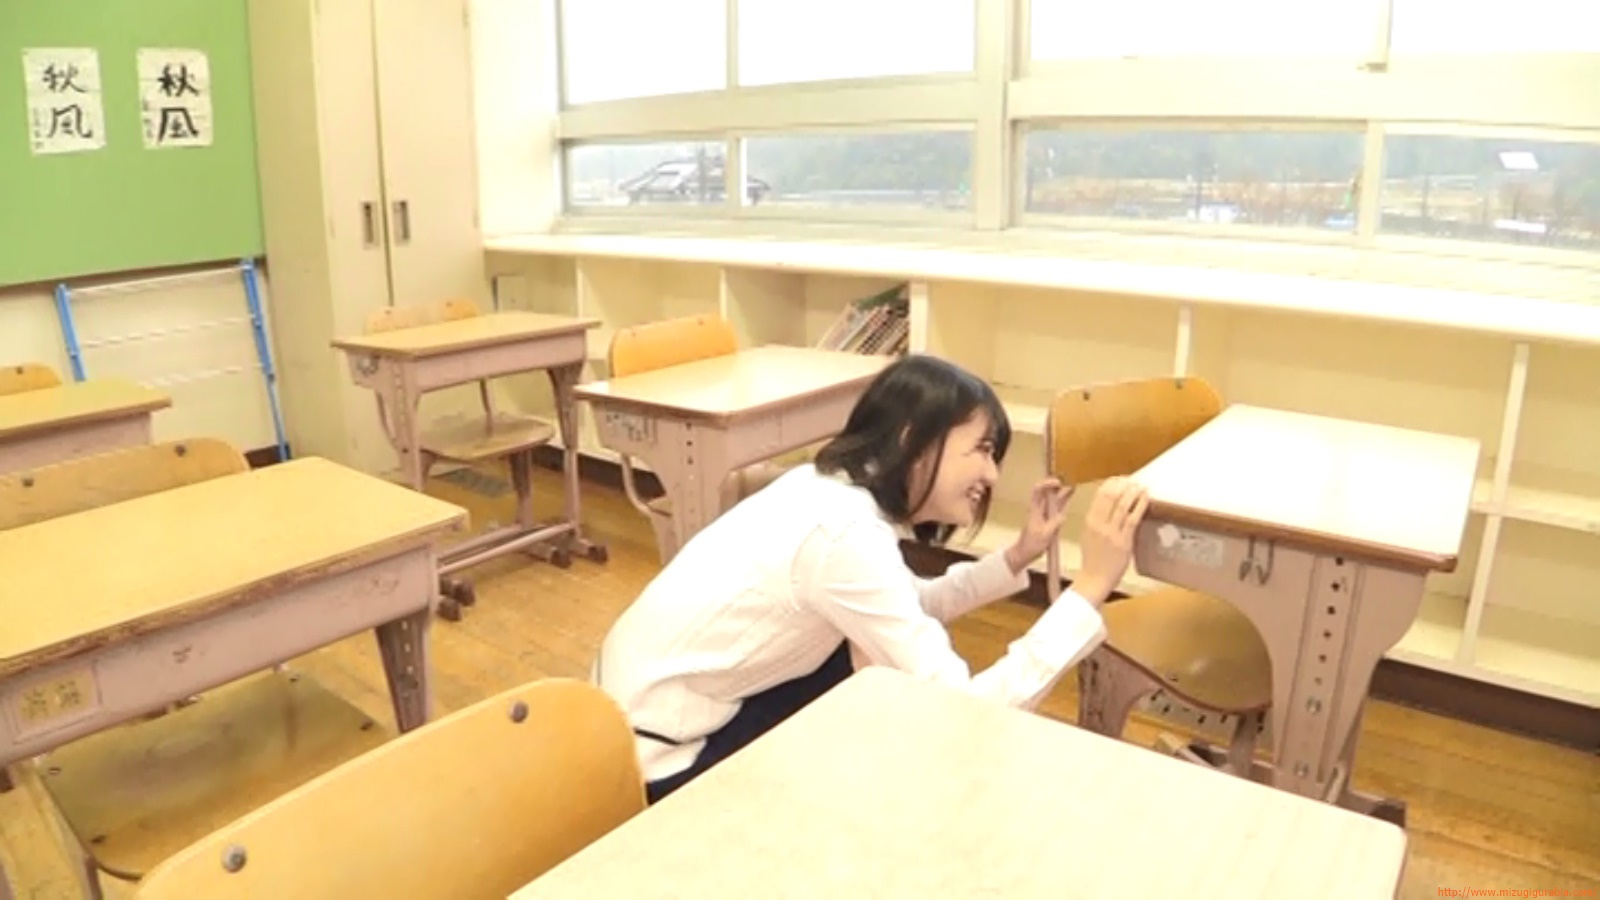 Two-person classroom044